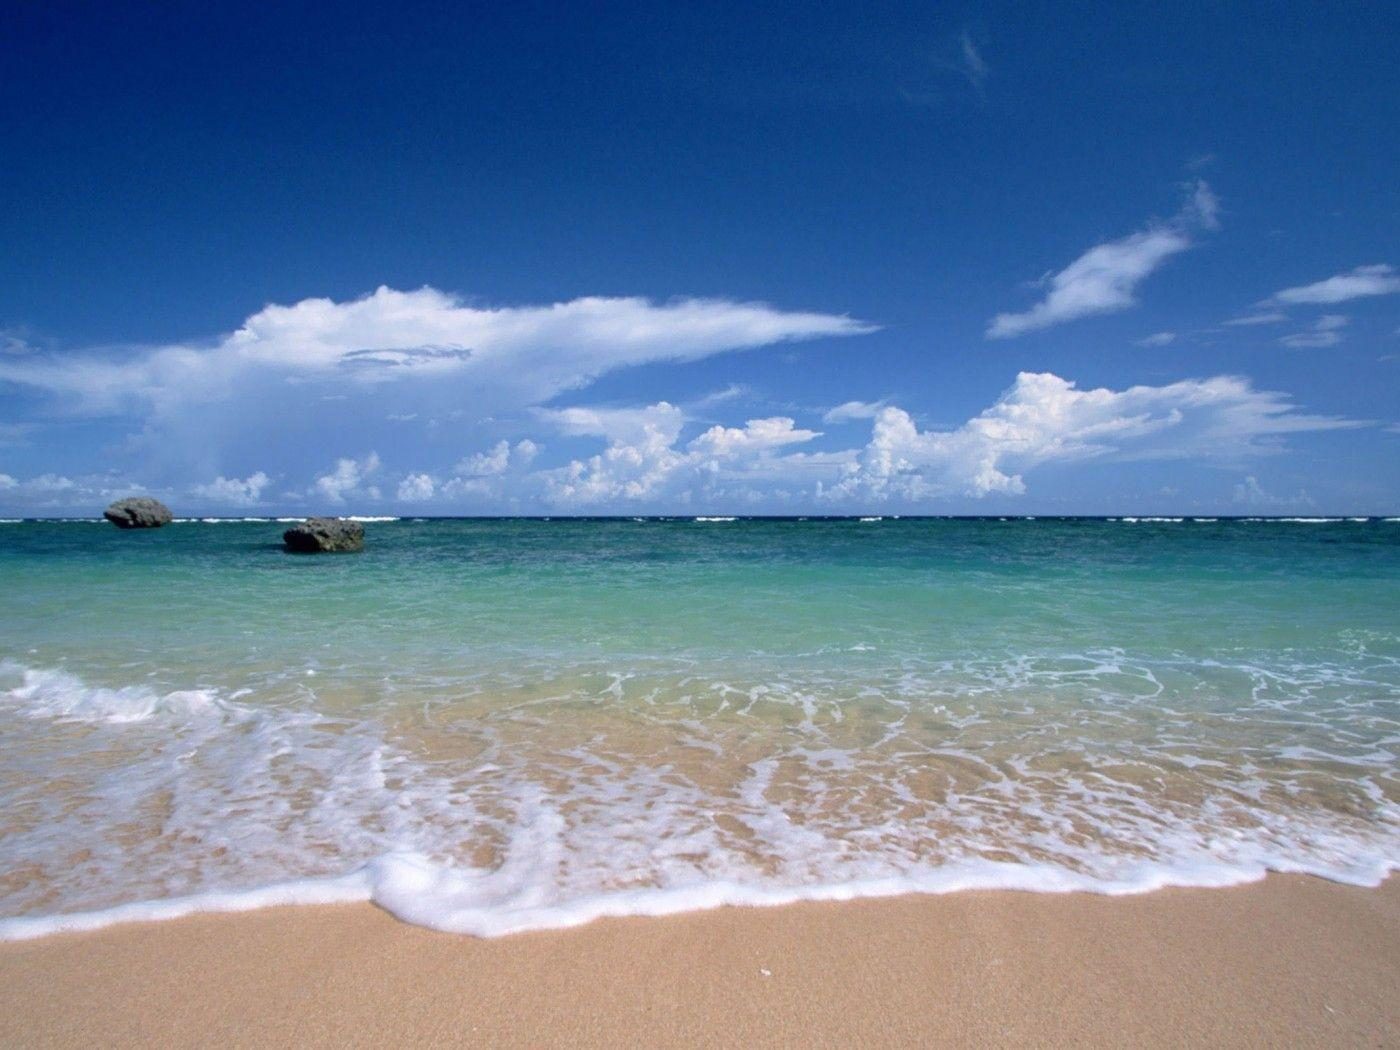 Beach Wallpapers For Computer - Wallpaper Cave